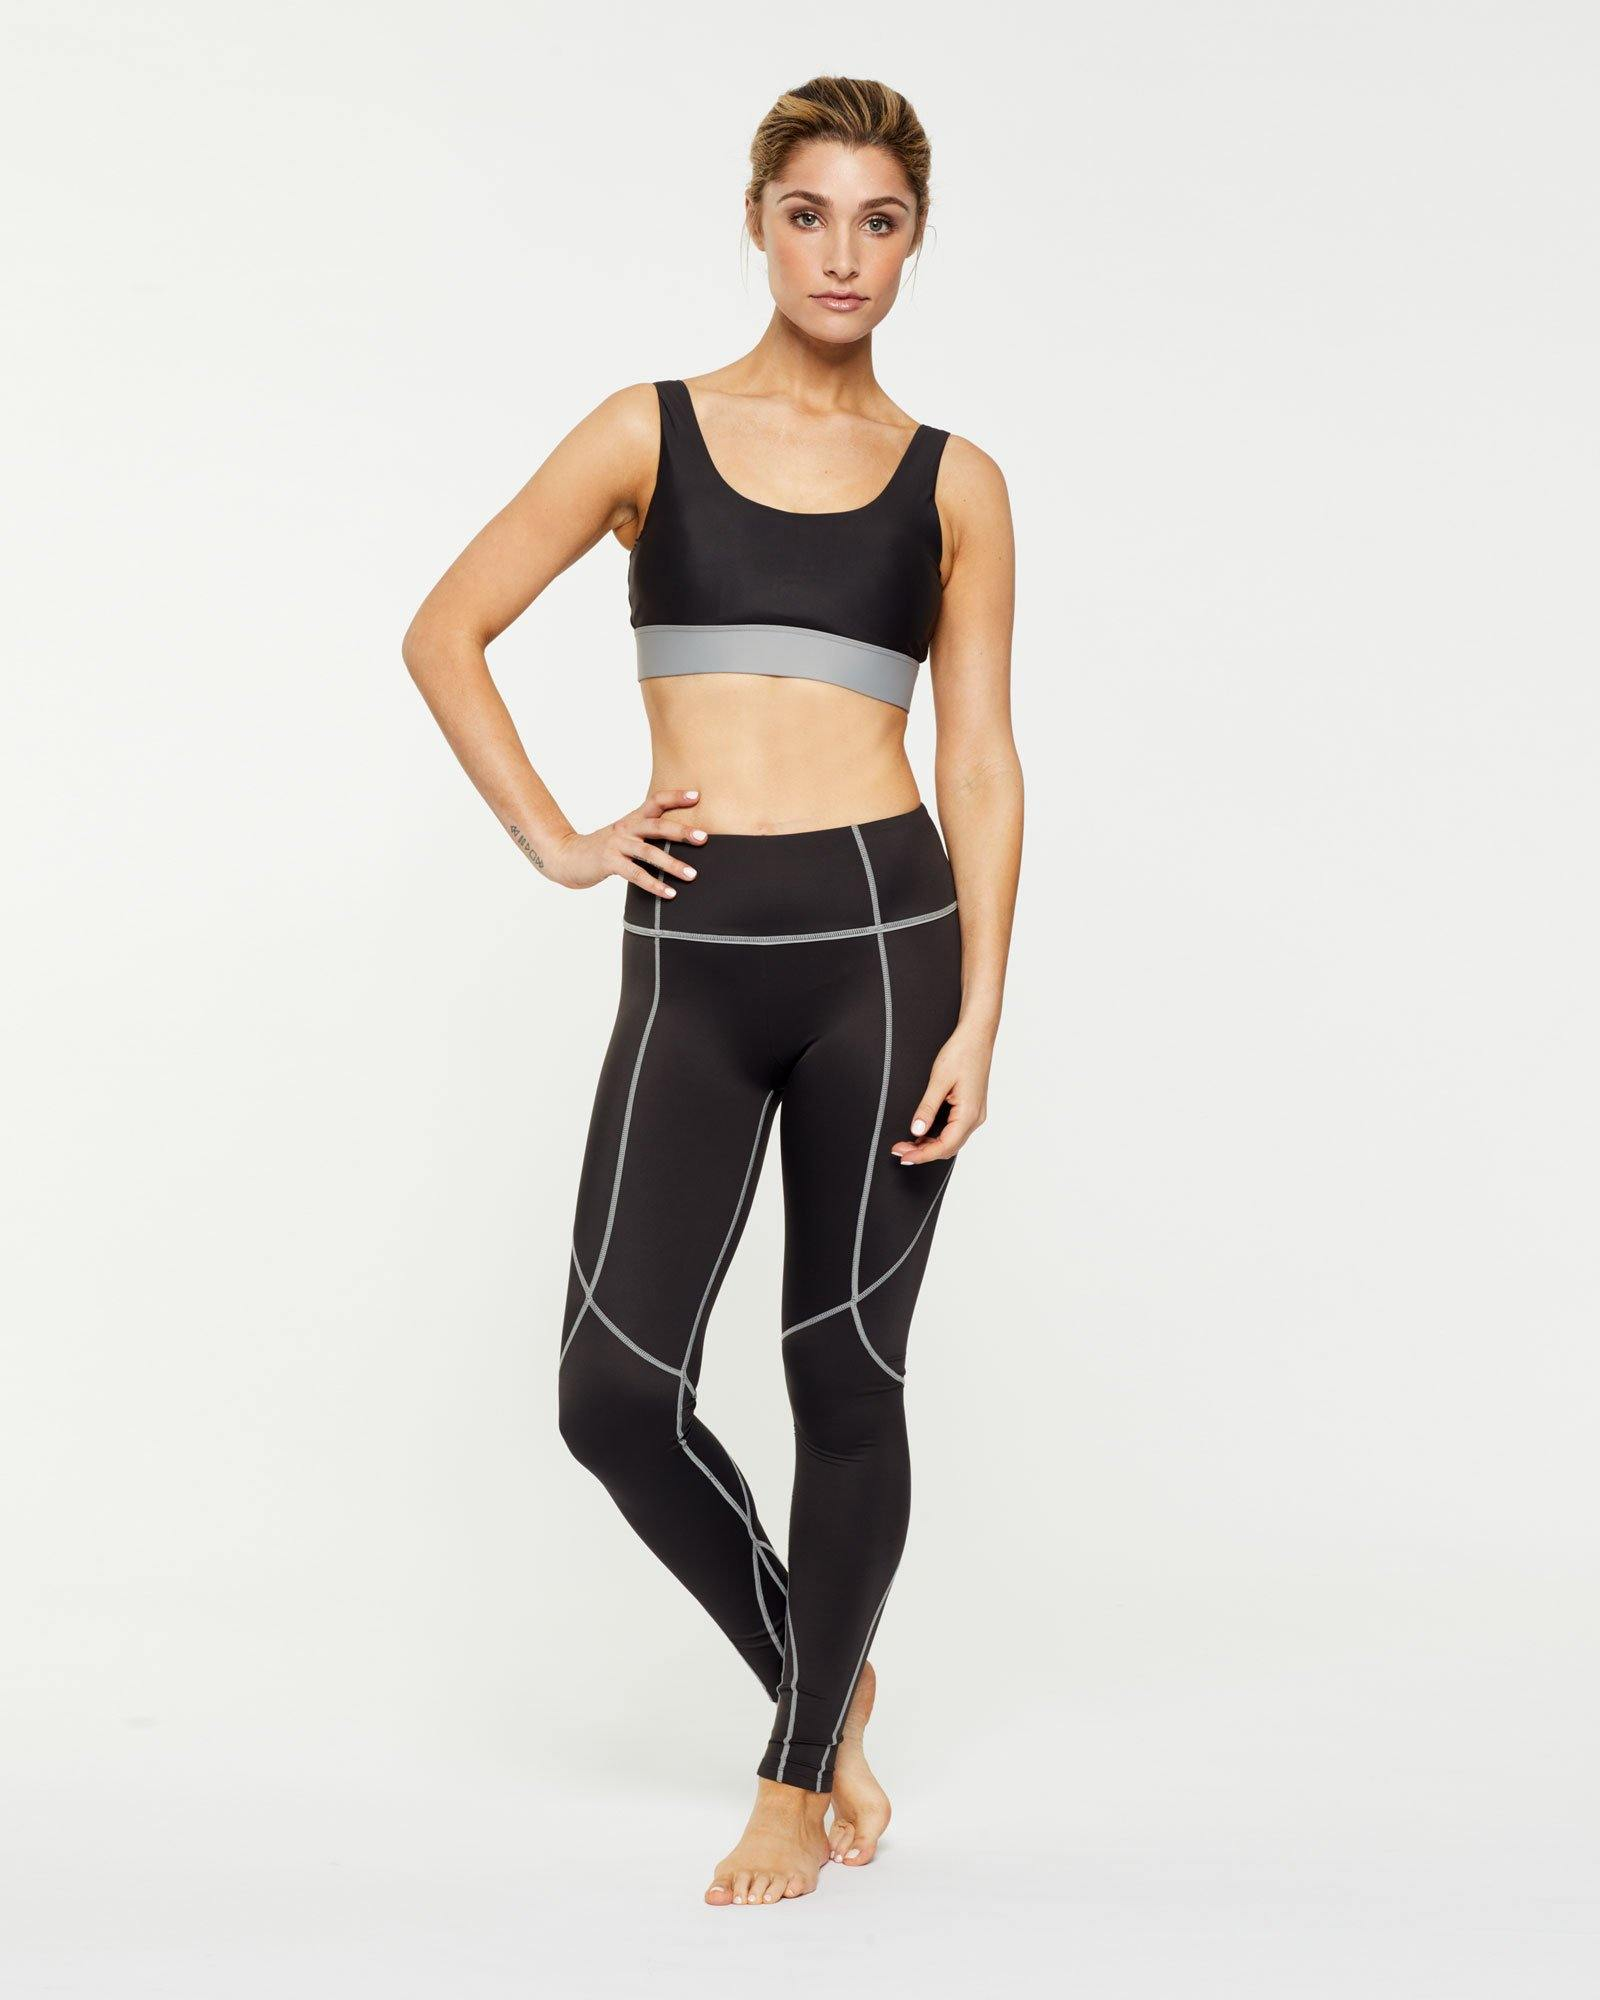 Steely PECTORALIS bra TOP WITH CONTRAST UNDER BUST BAND, WORN WITH VASTUS MID-WAIST LEGGING FRONT VIEW